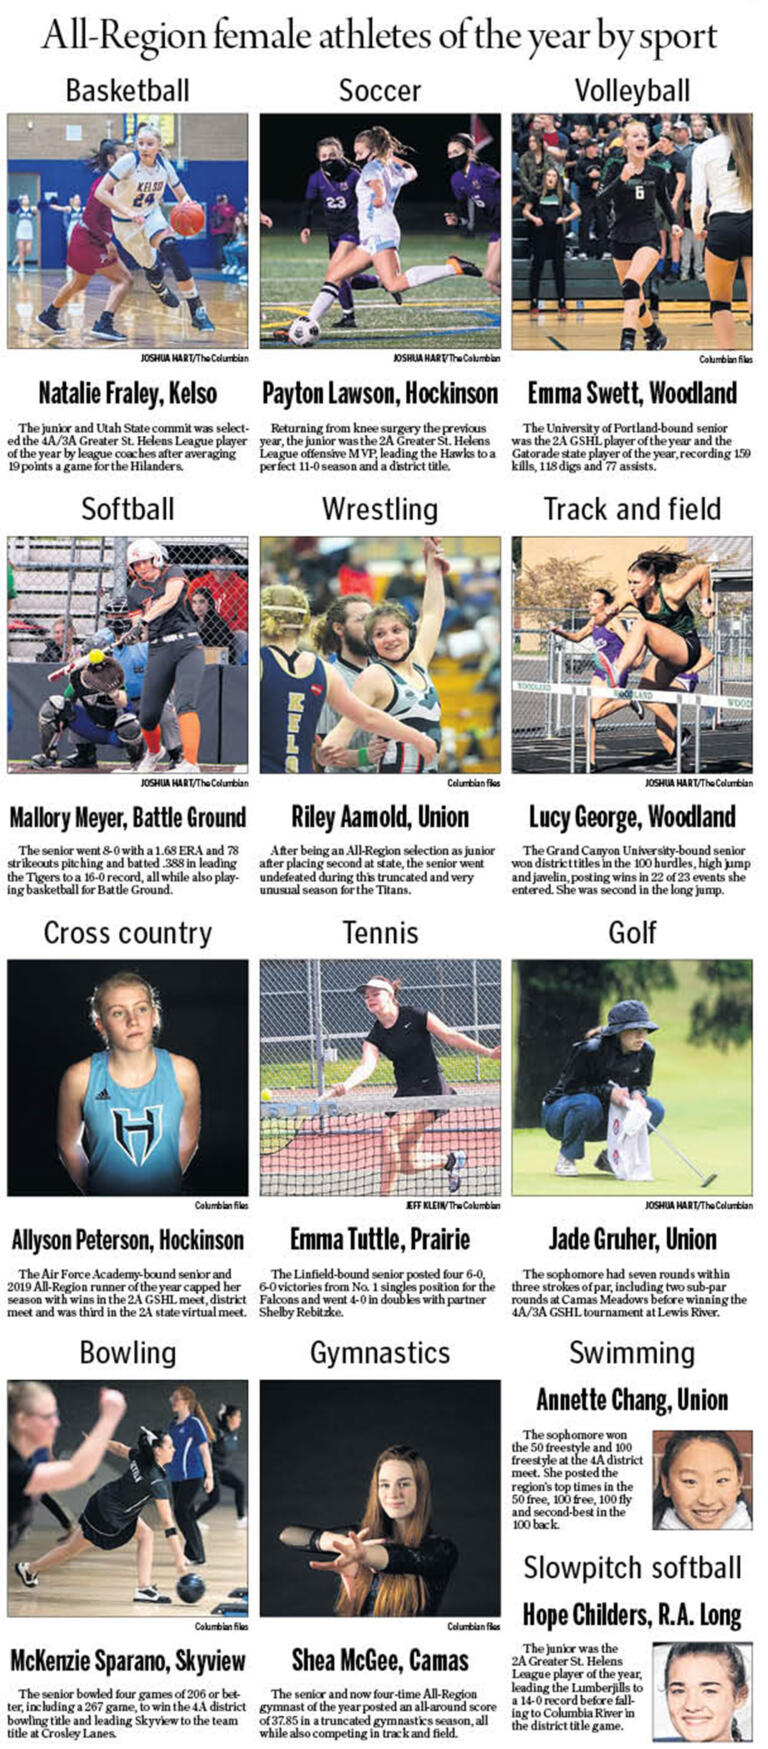 All-Region female athletes of the year by sport for 2020-21 school year.